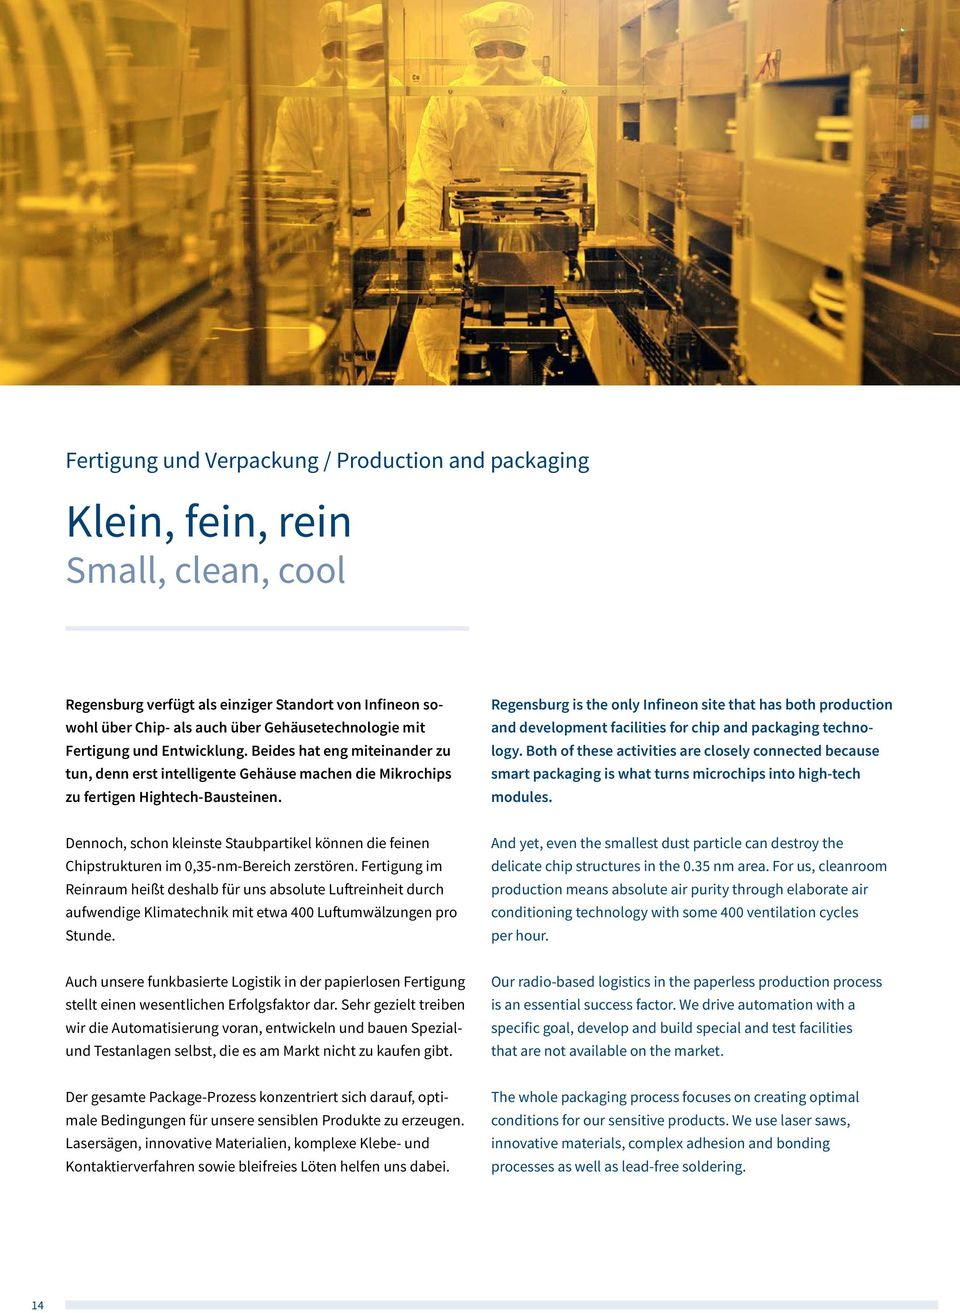 Regensburg is the only Infineon site that has both production and development facilities for chip and packaging technology.